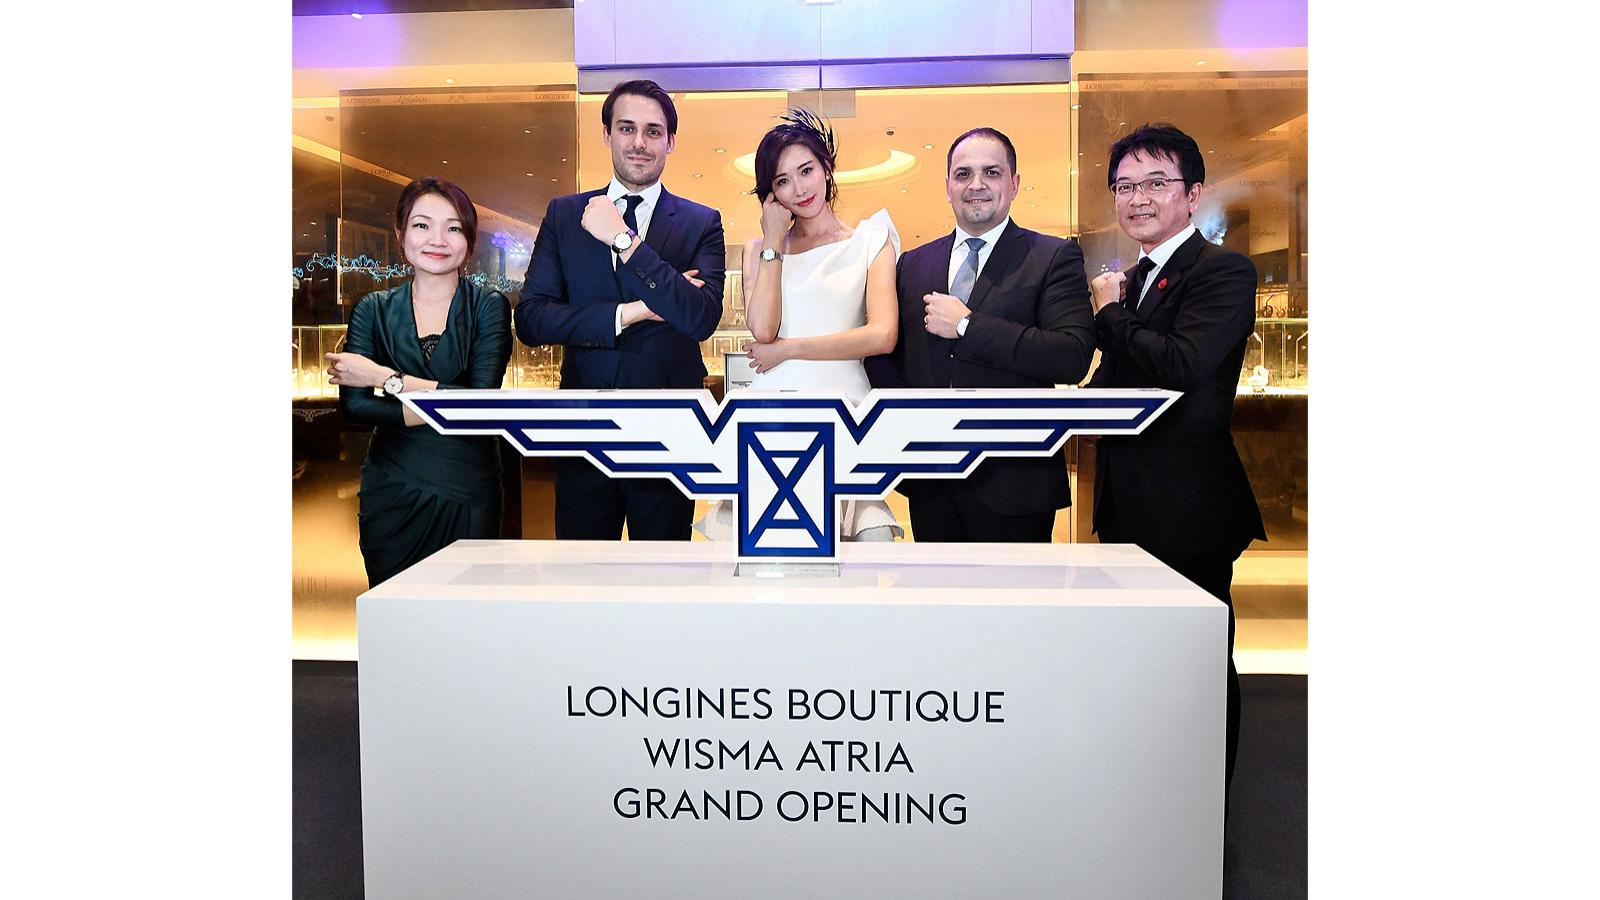 Longines launches; new boutique; Singapore; Wisma Atria; Orchard Road